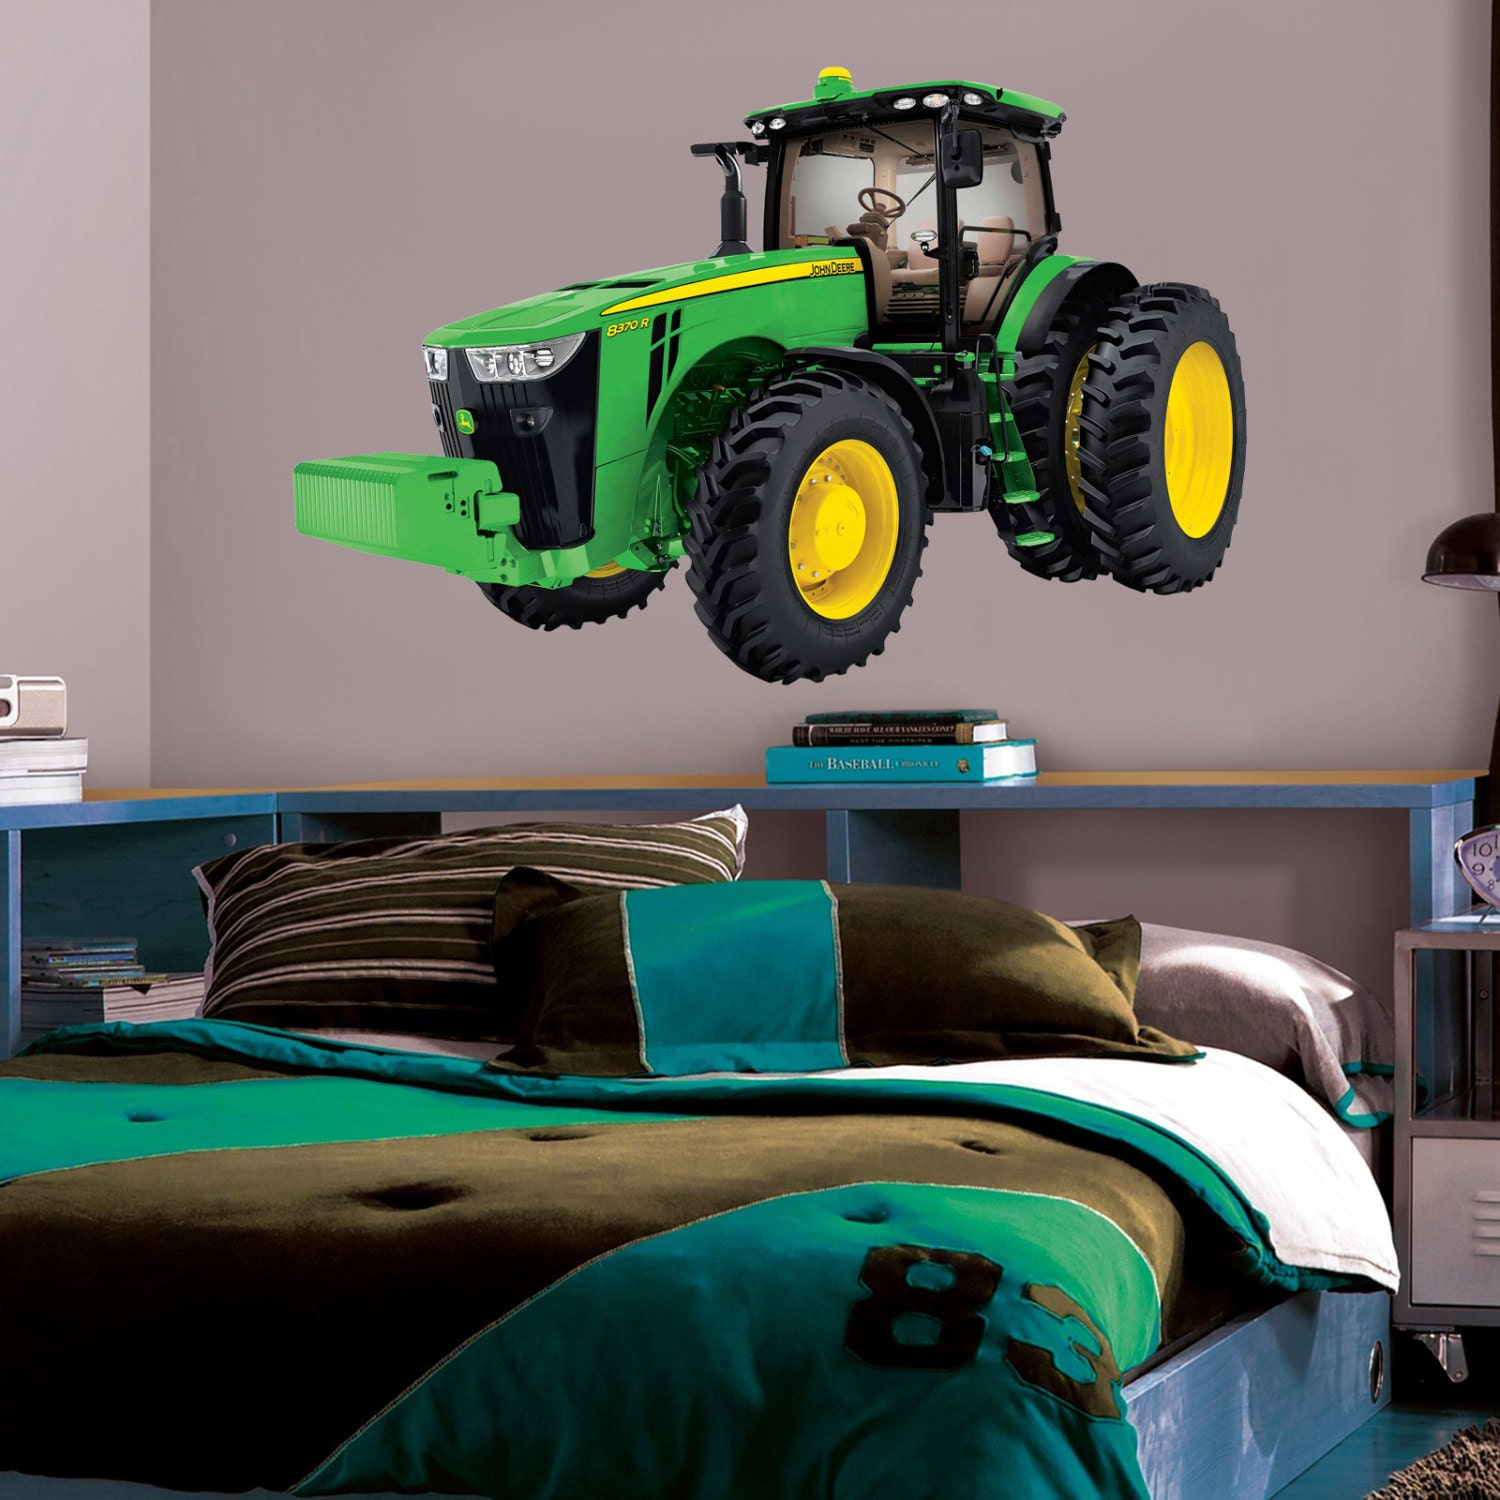 john deere tractor decal wall sticker home decor by